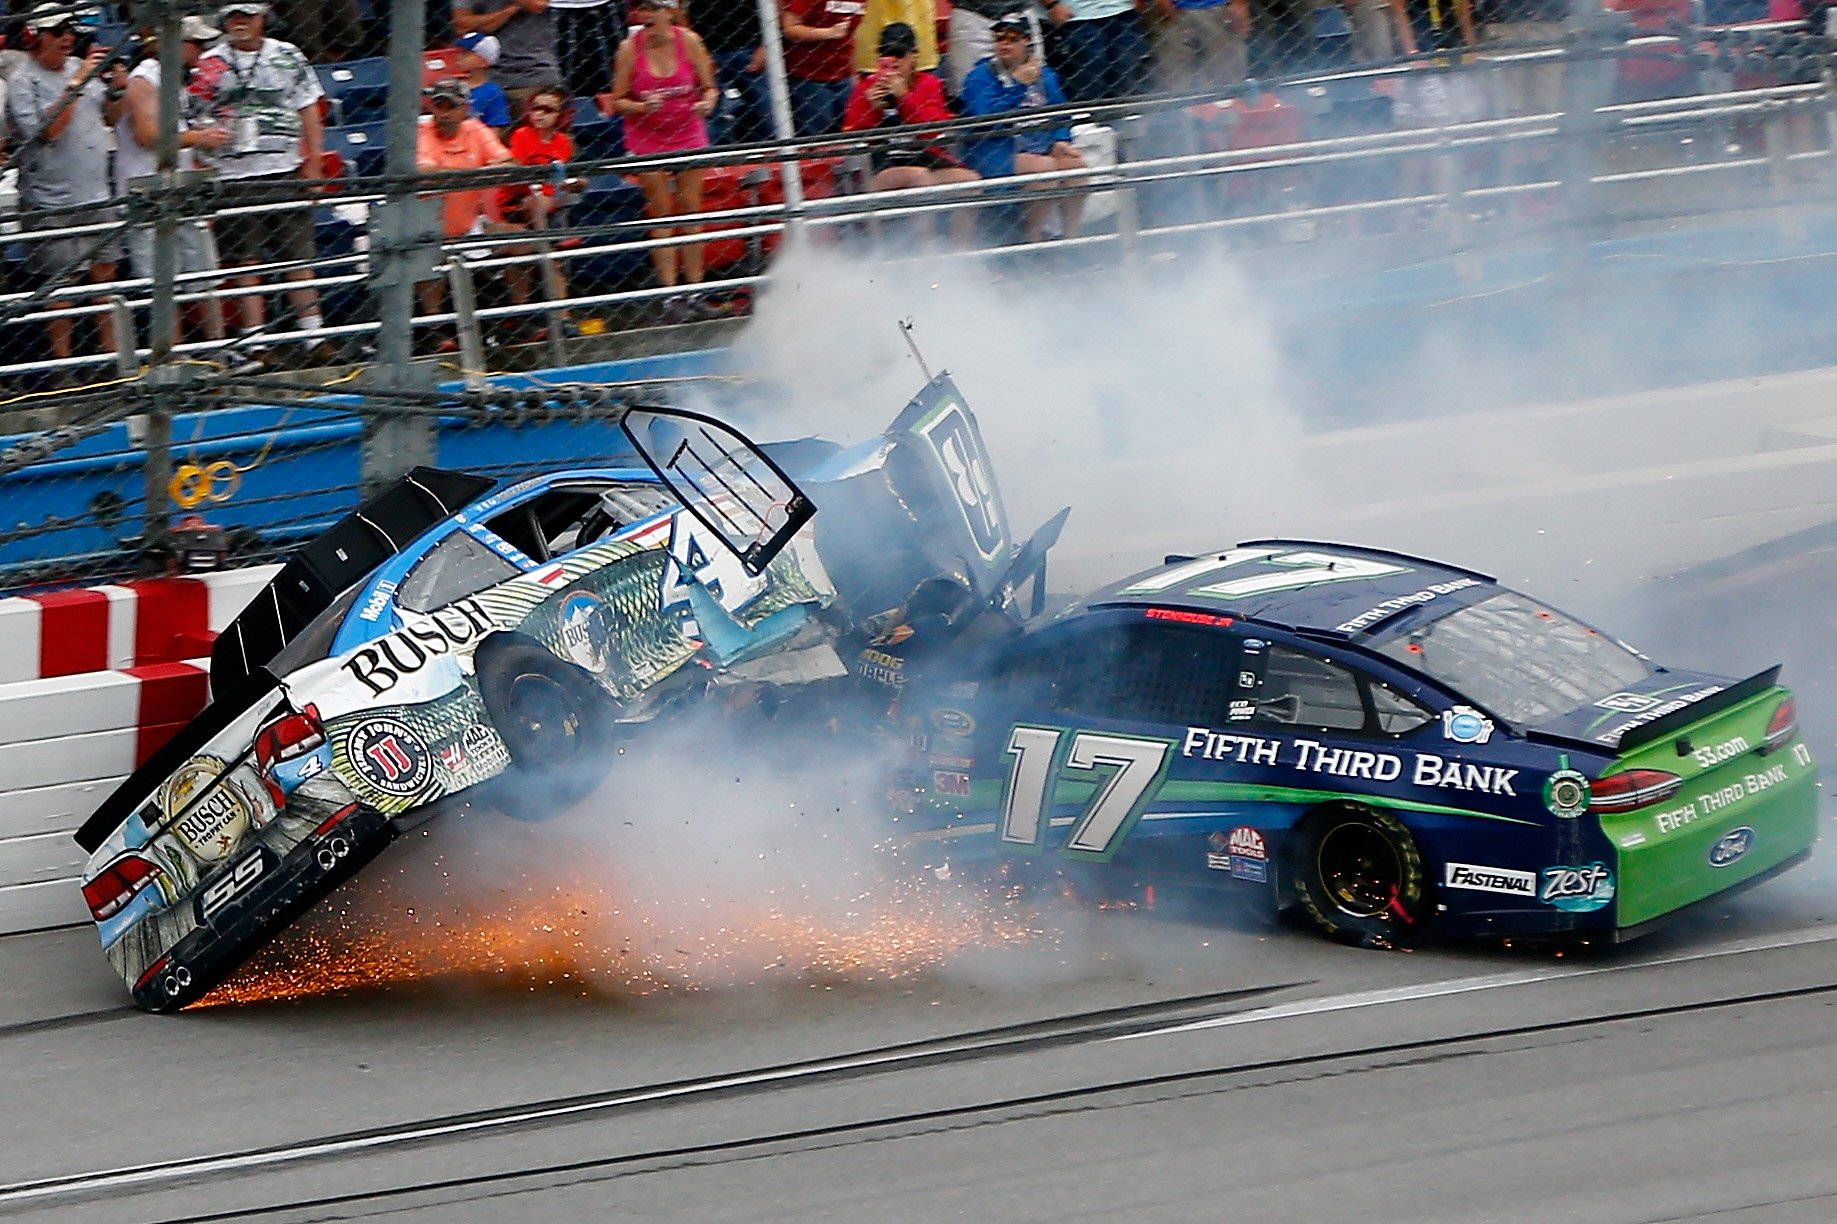 Talladega the latest evidence that NASCAR restrictor-plate insanity needs to stop